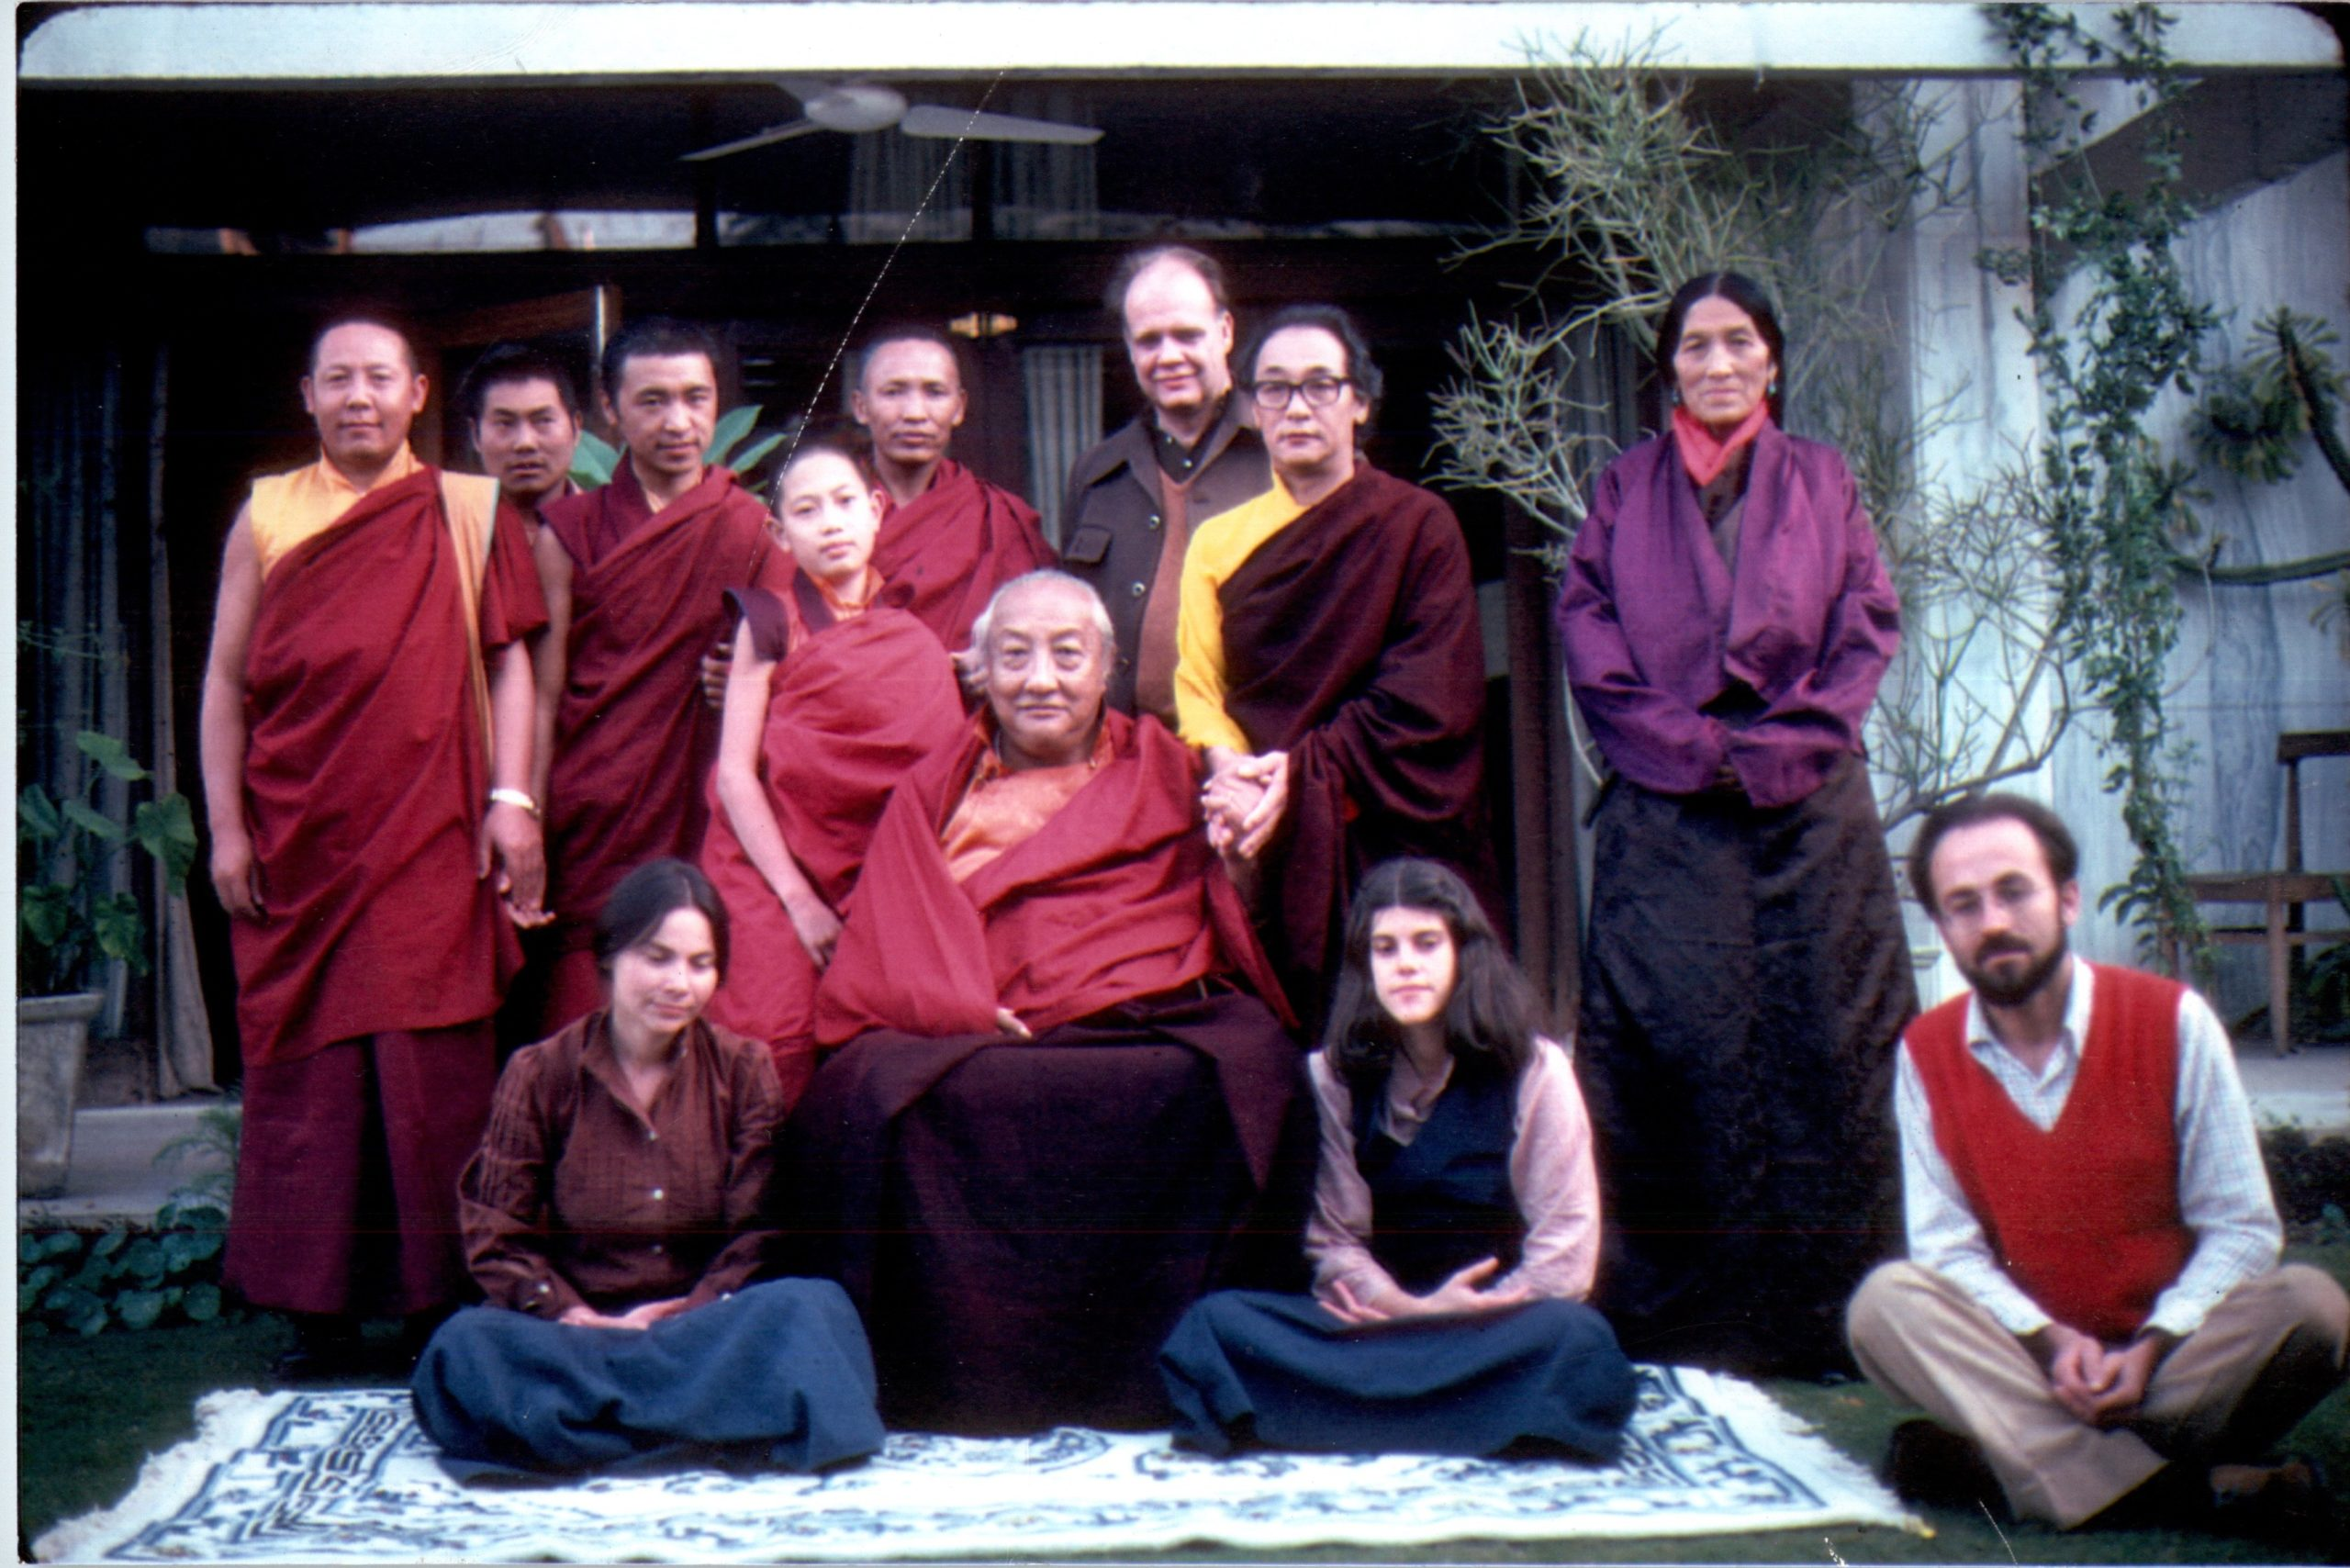 Gene Smith with Dilgo Khyentse and others